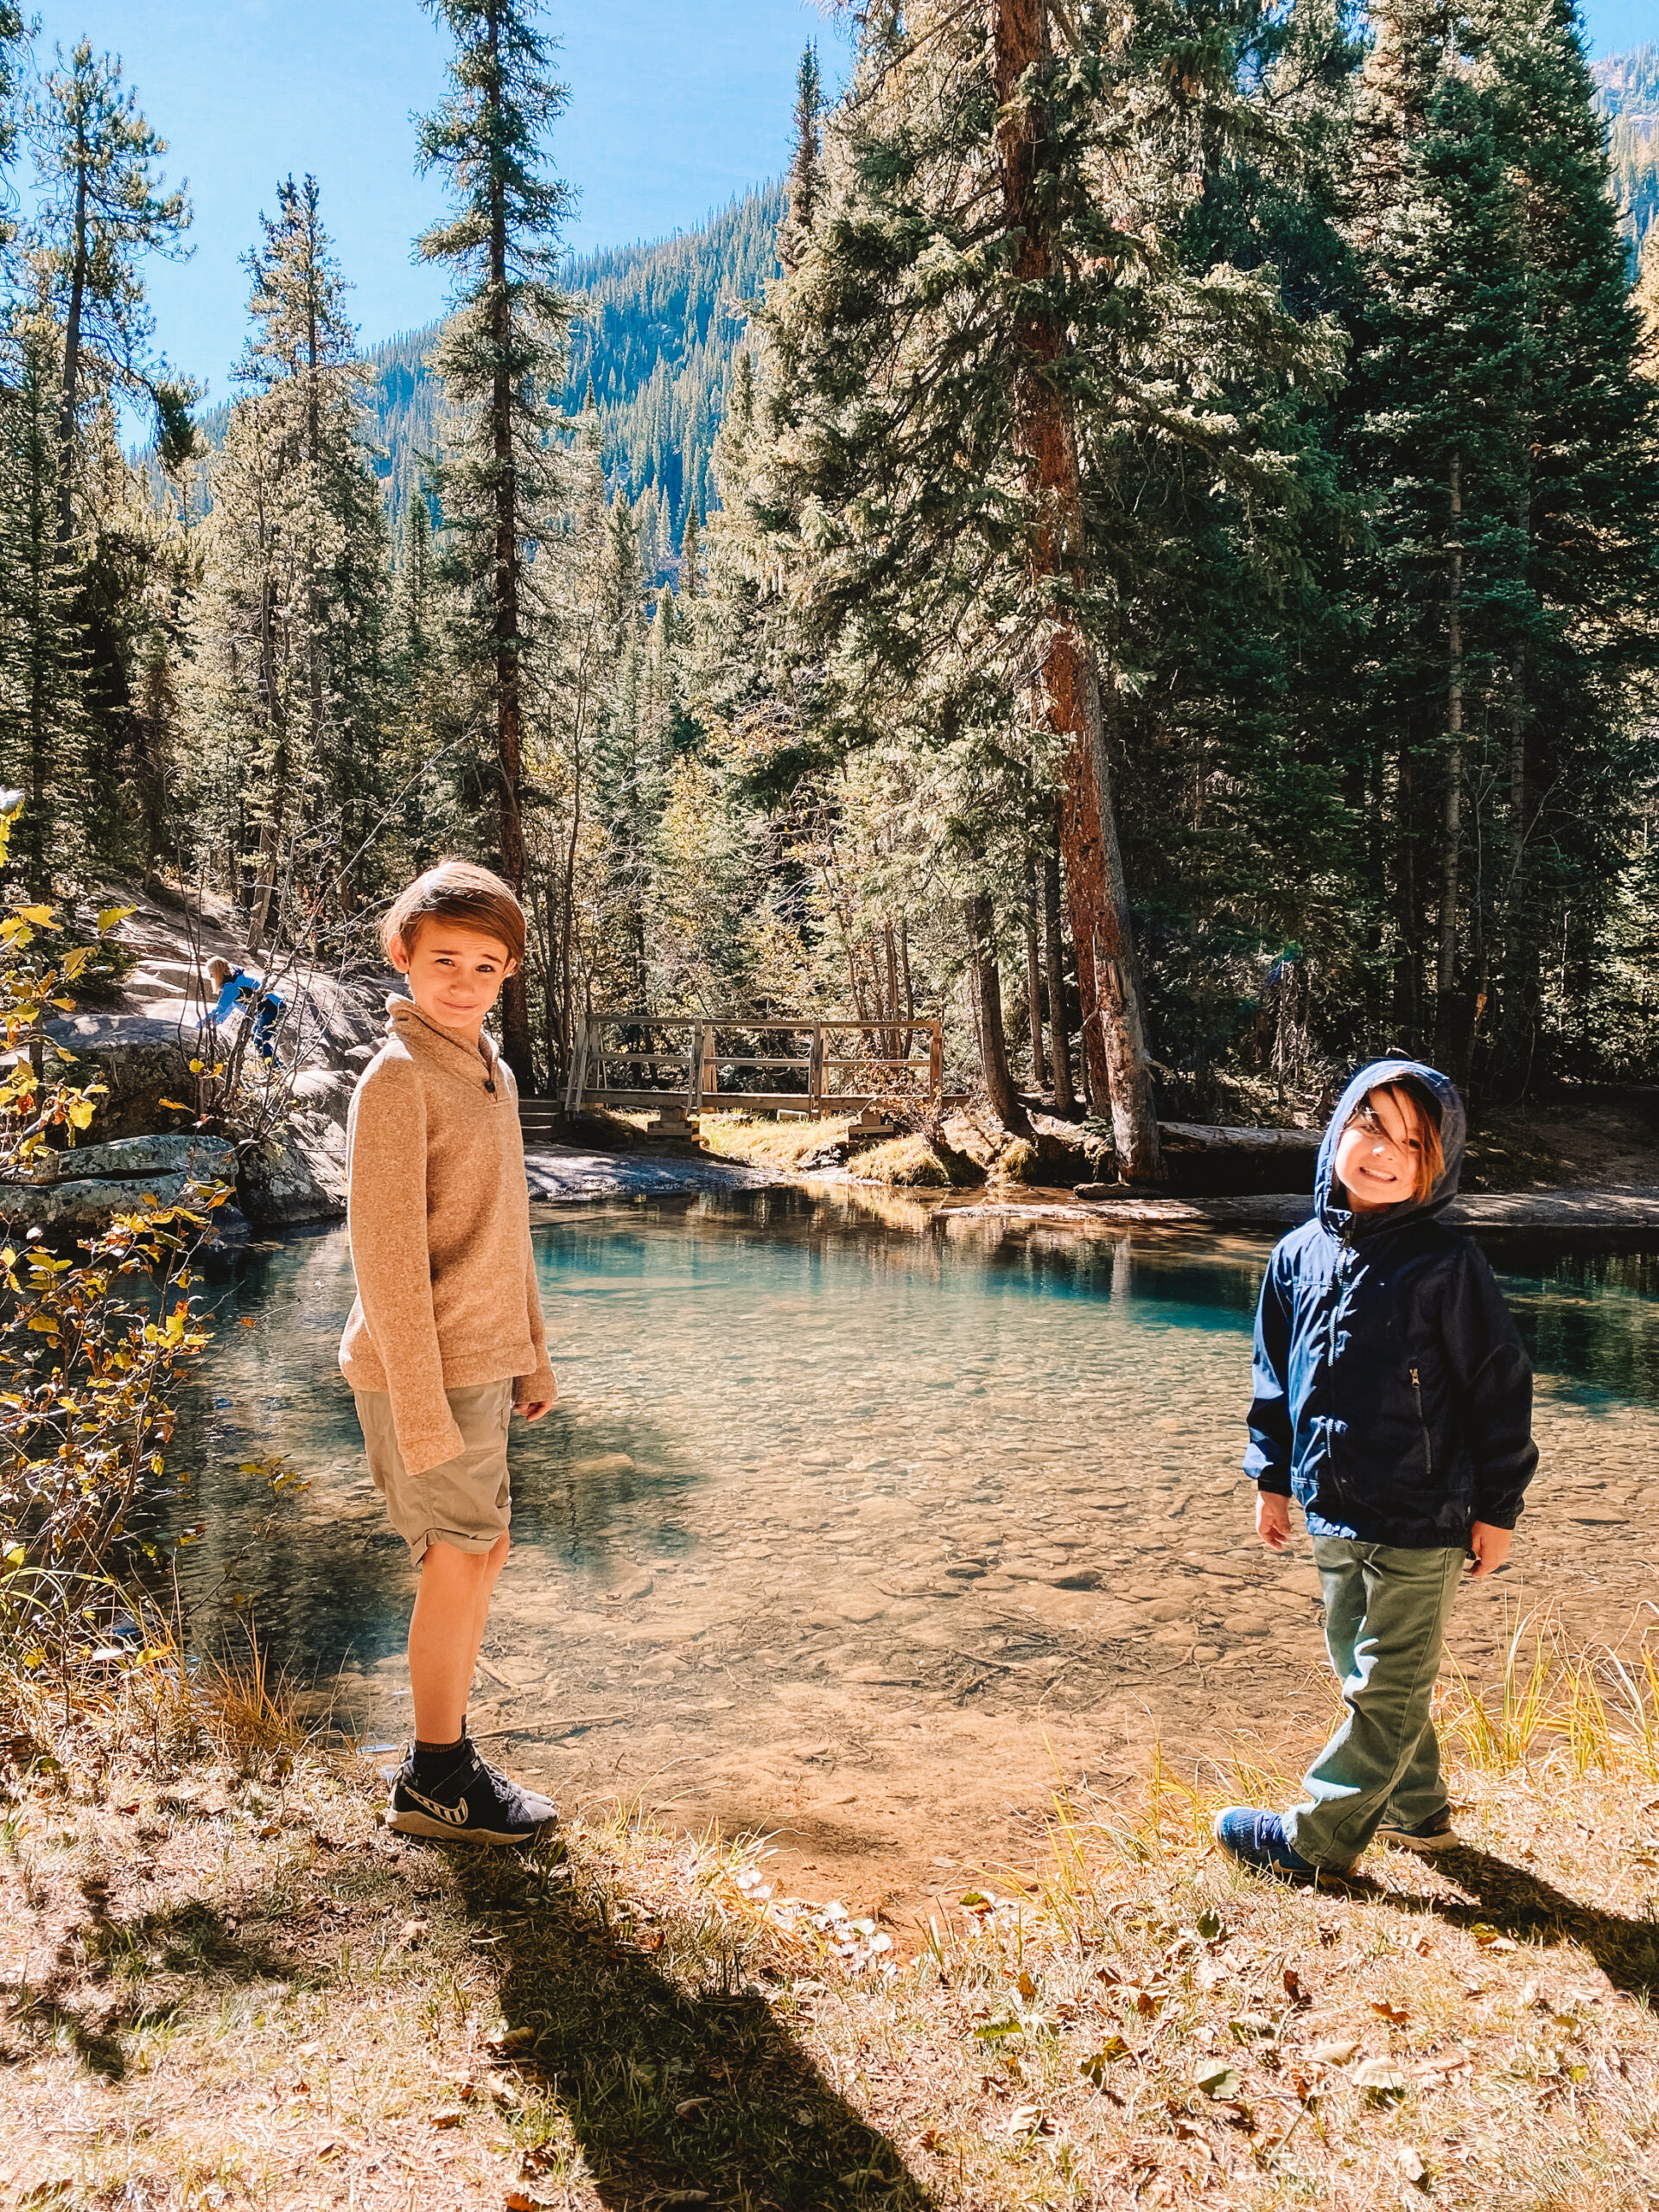 finding fall in colorado with hike to the grottos. #thdldtravels #outdoorfamilies #gethoutside